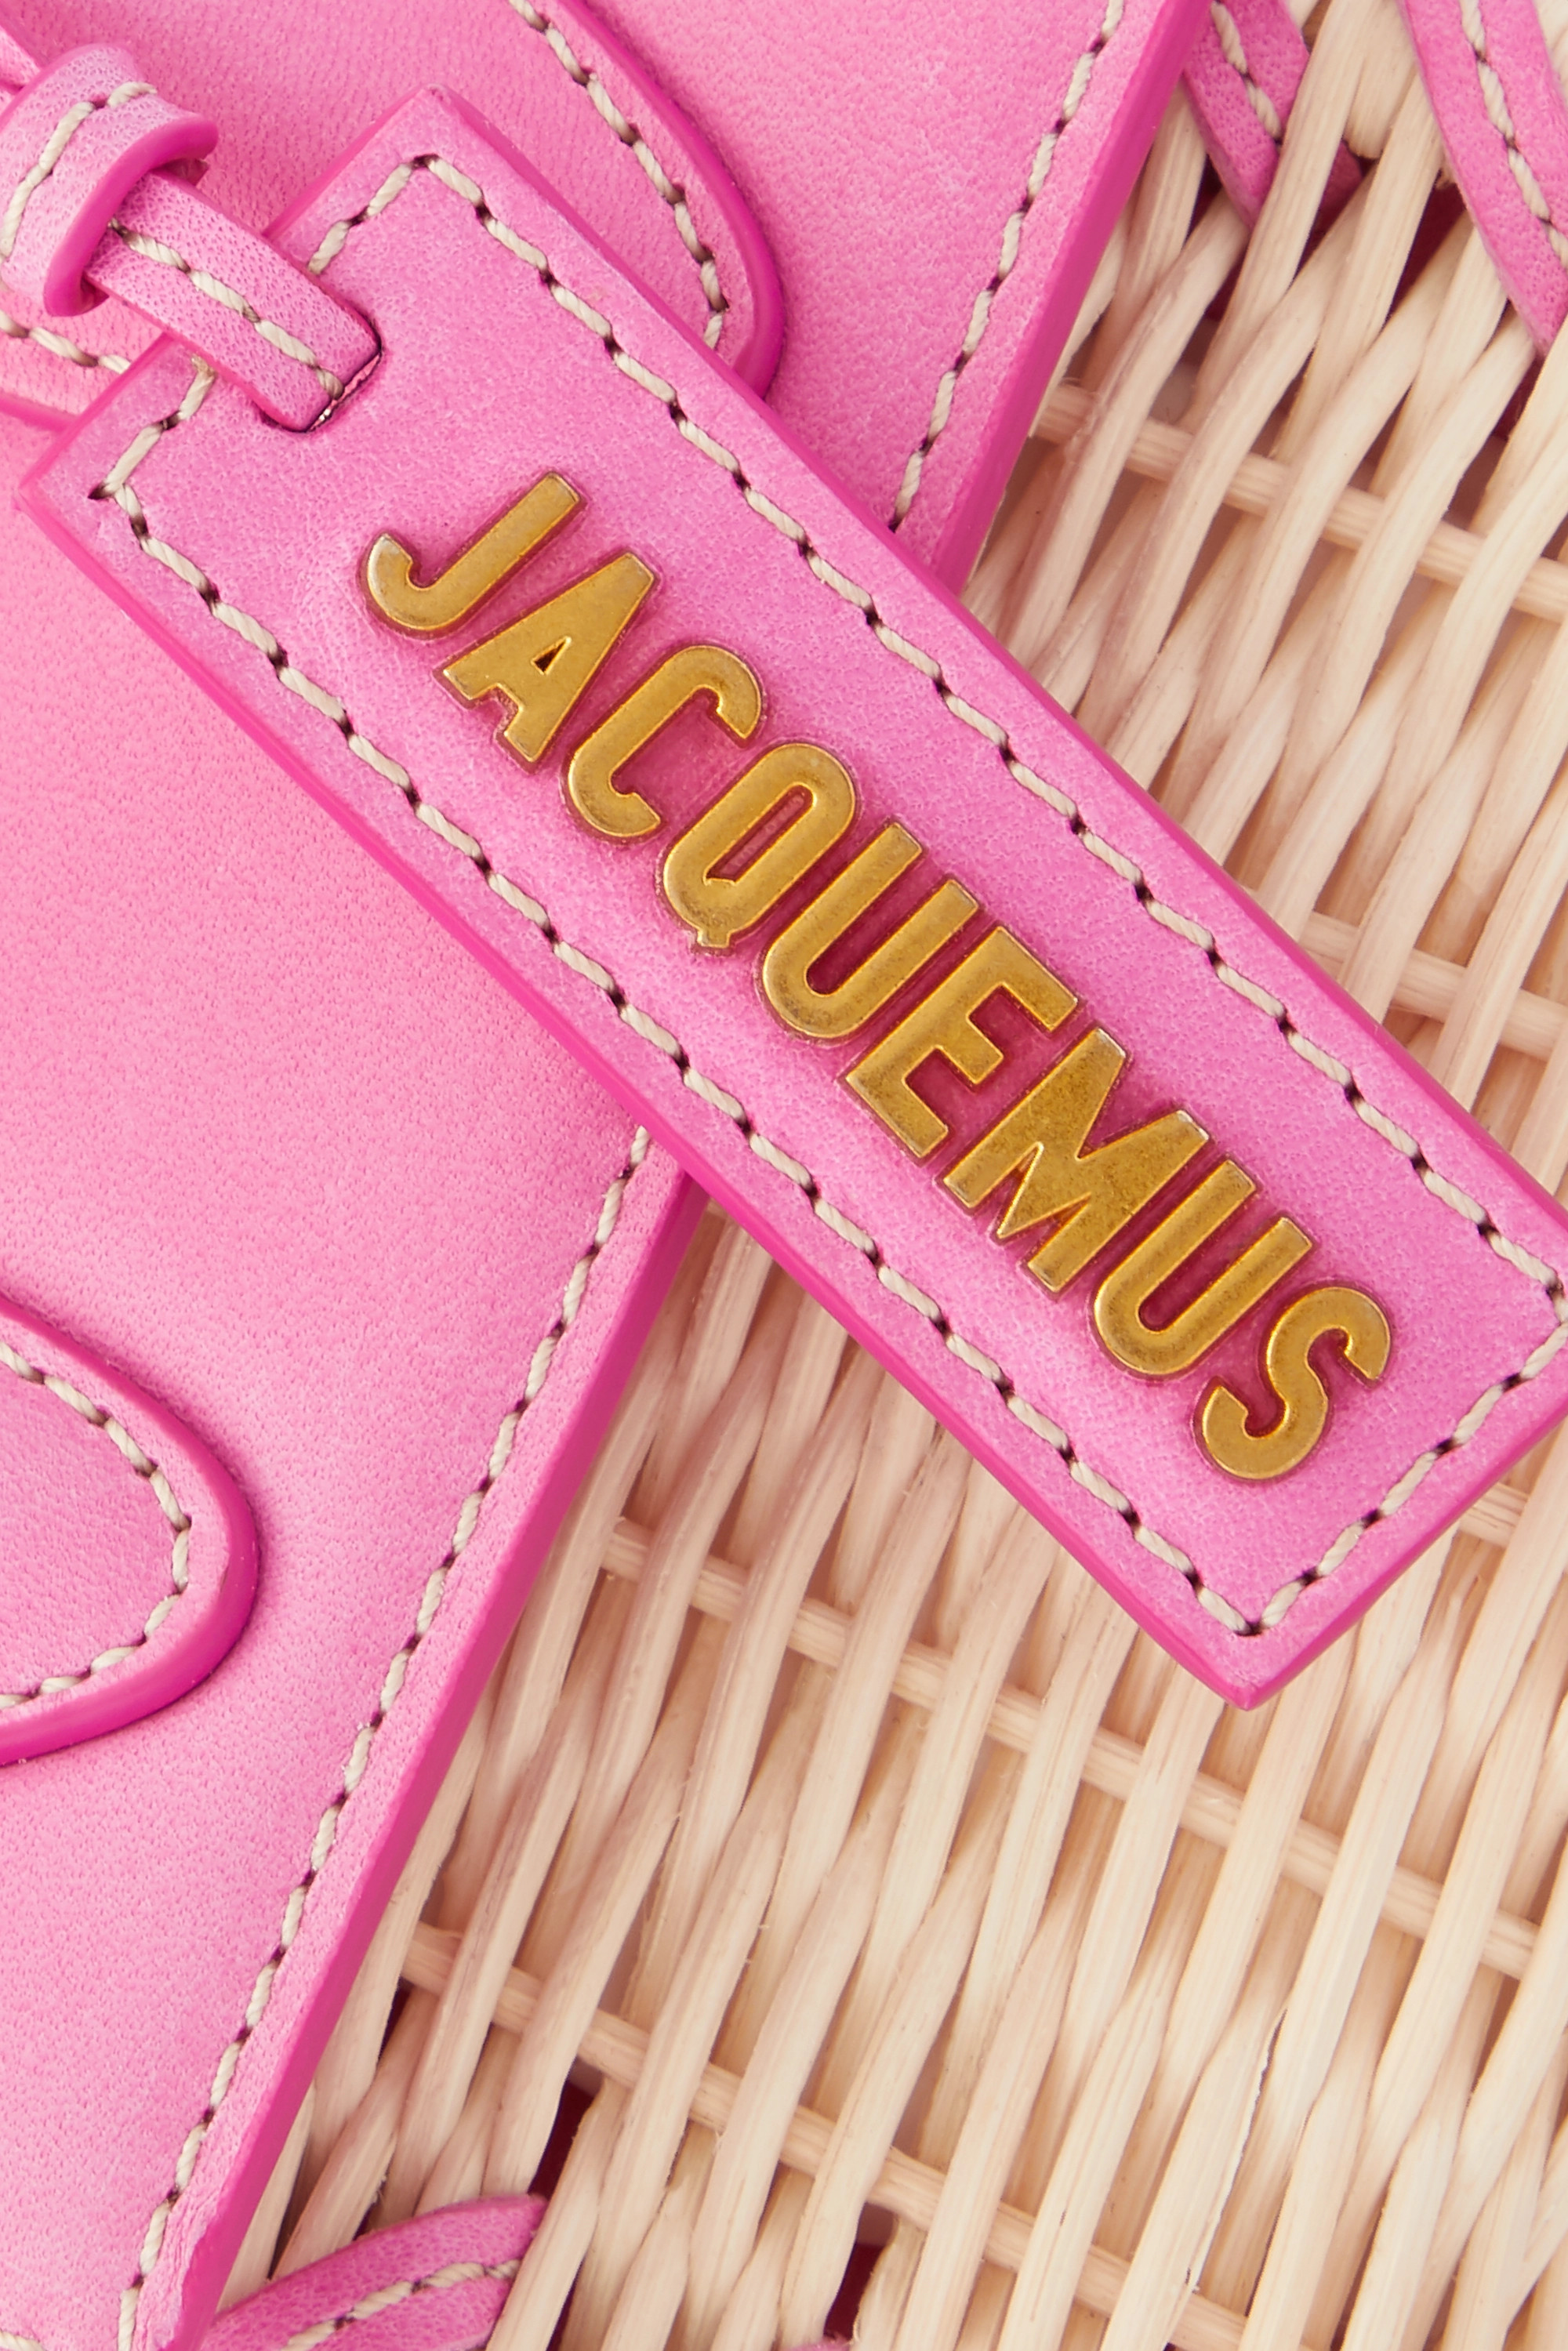 Jacquemus Le Chiquito leather-trimmed wicker tote